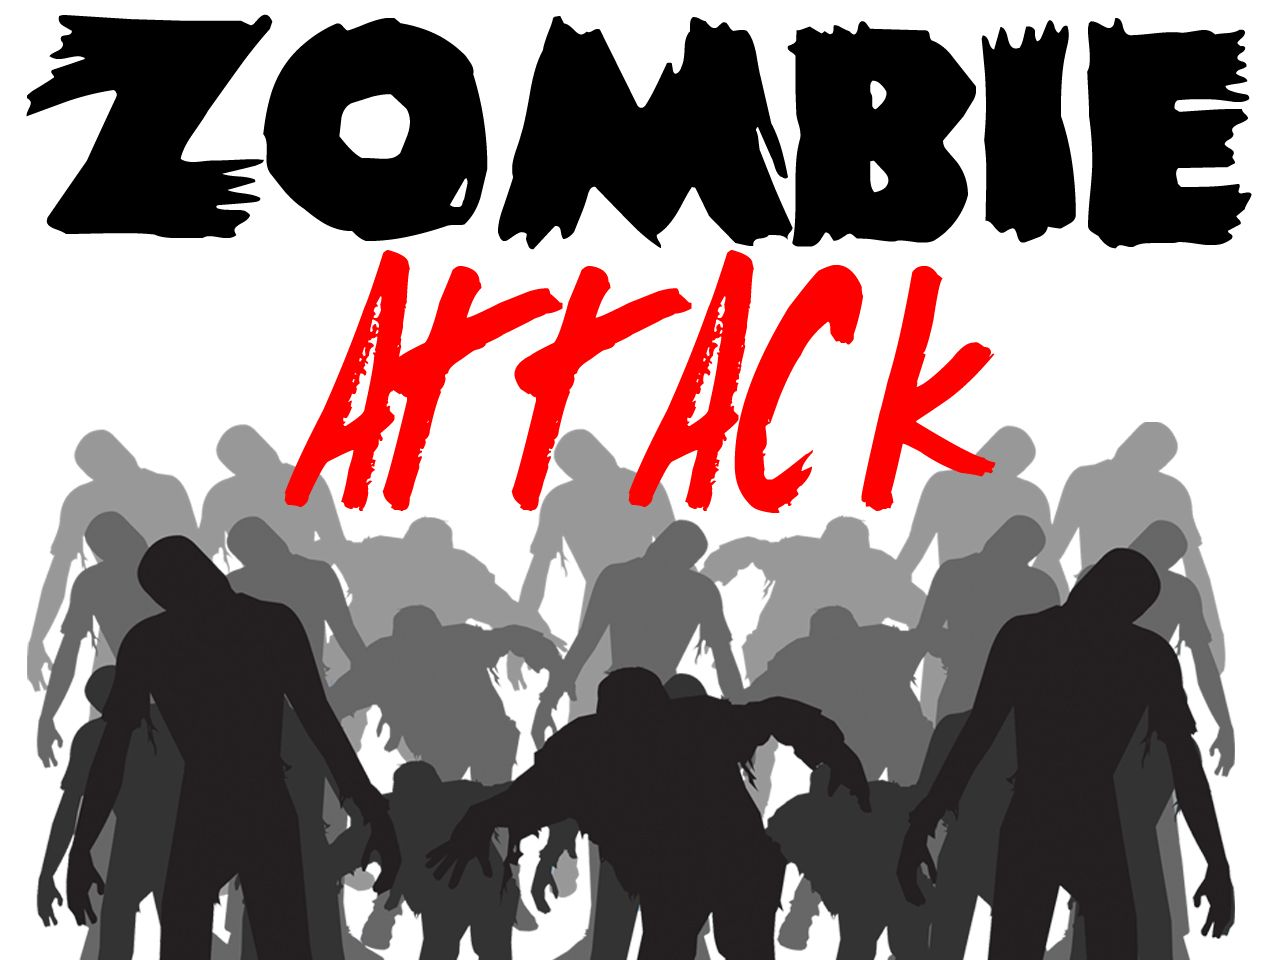 Zombie Attack Game Youth Ministry Games Youth Group